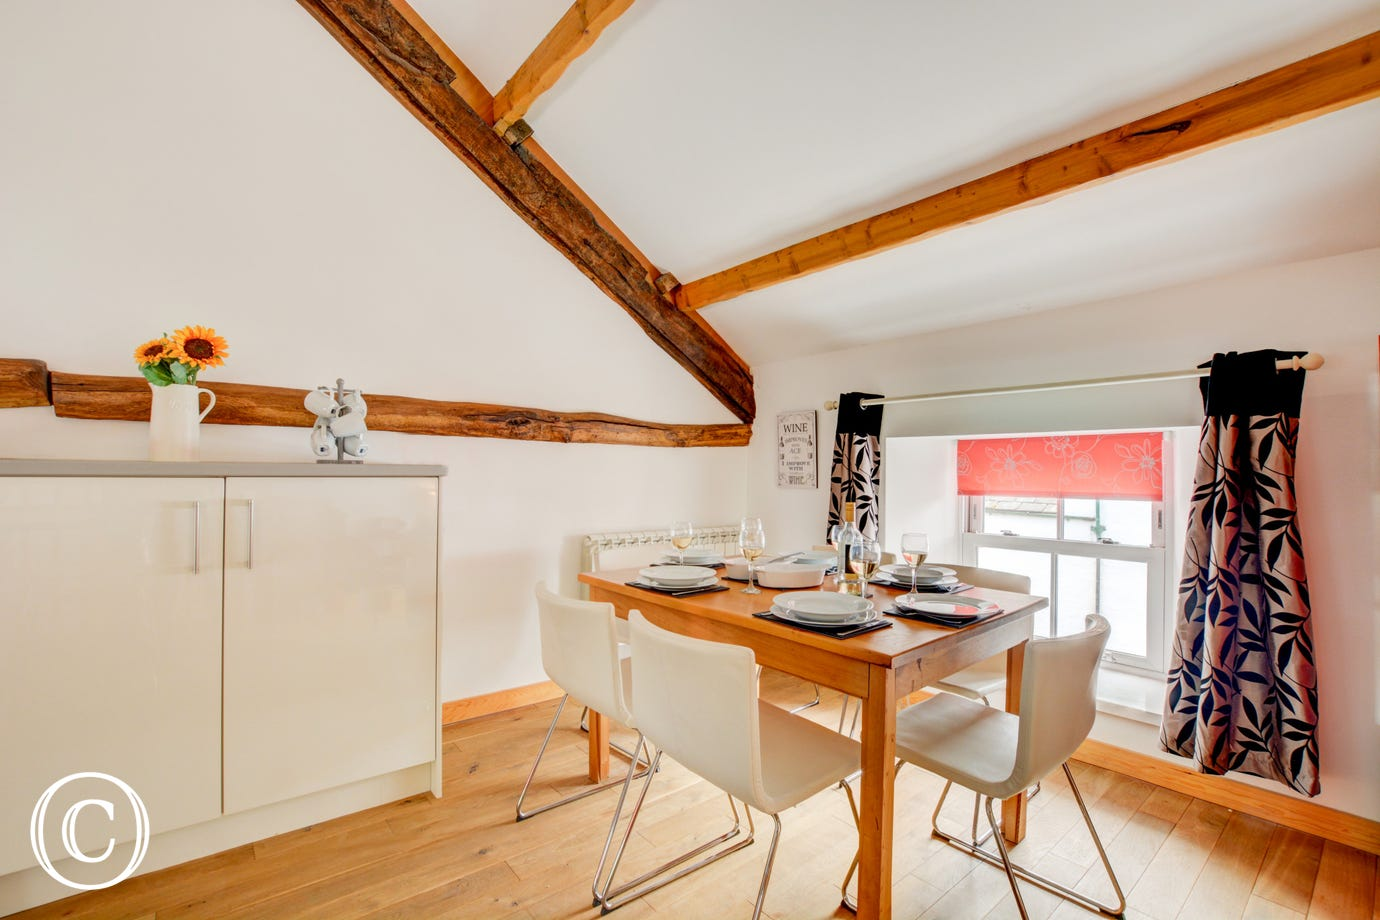 The dining area of the open plan living accomodation